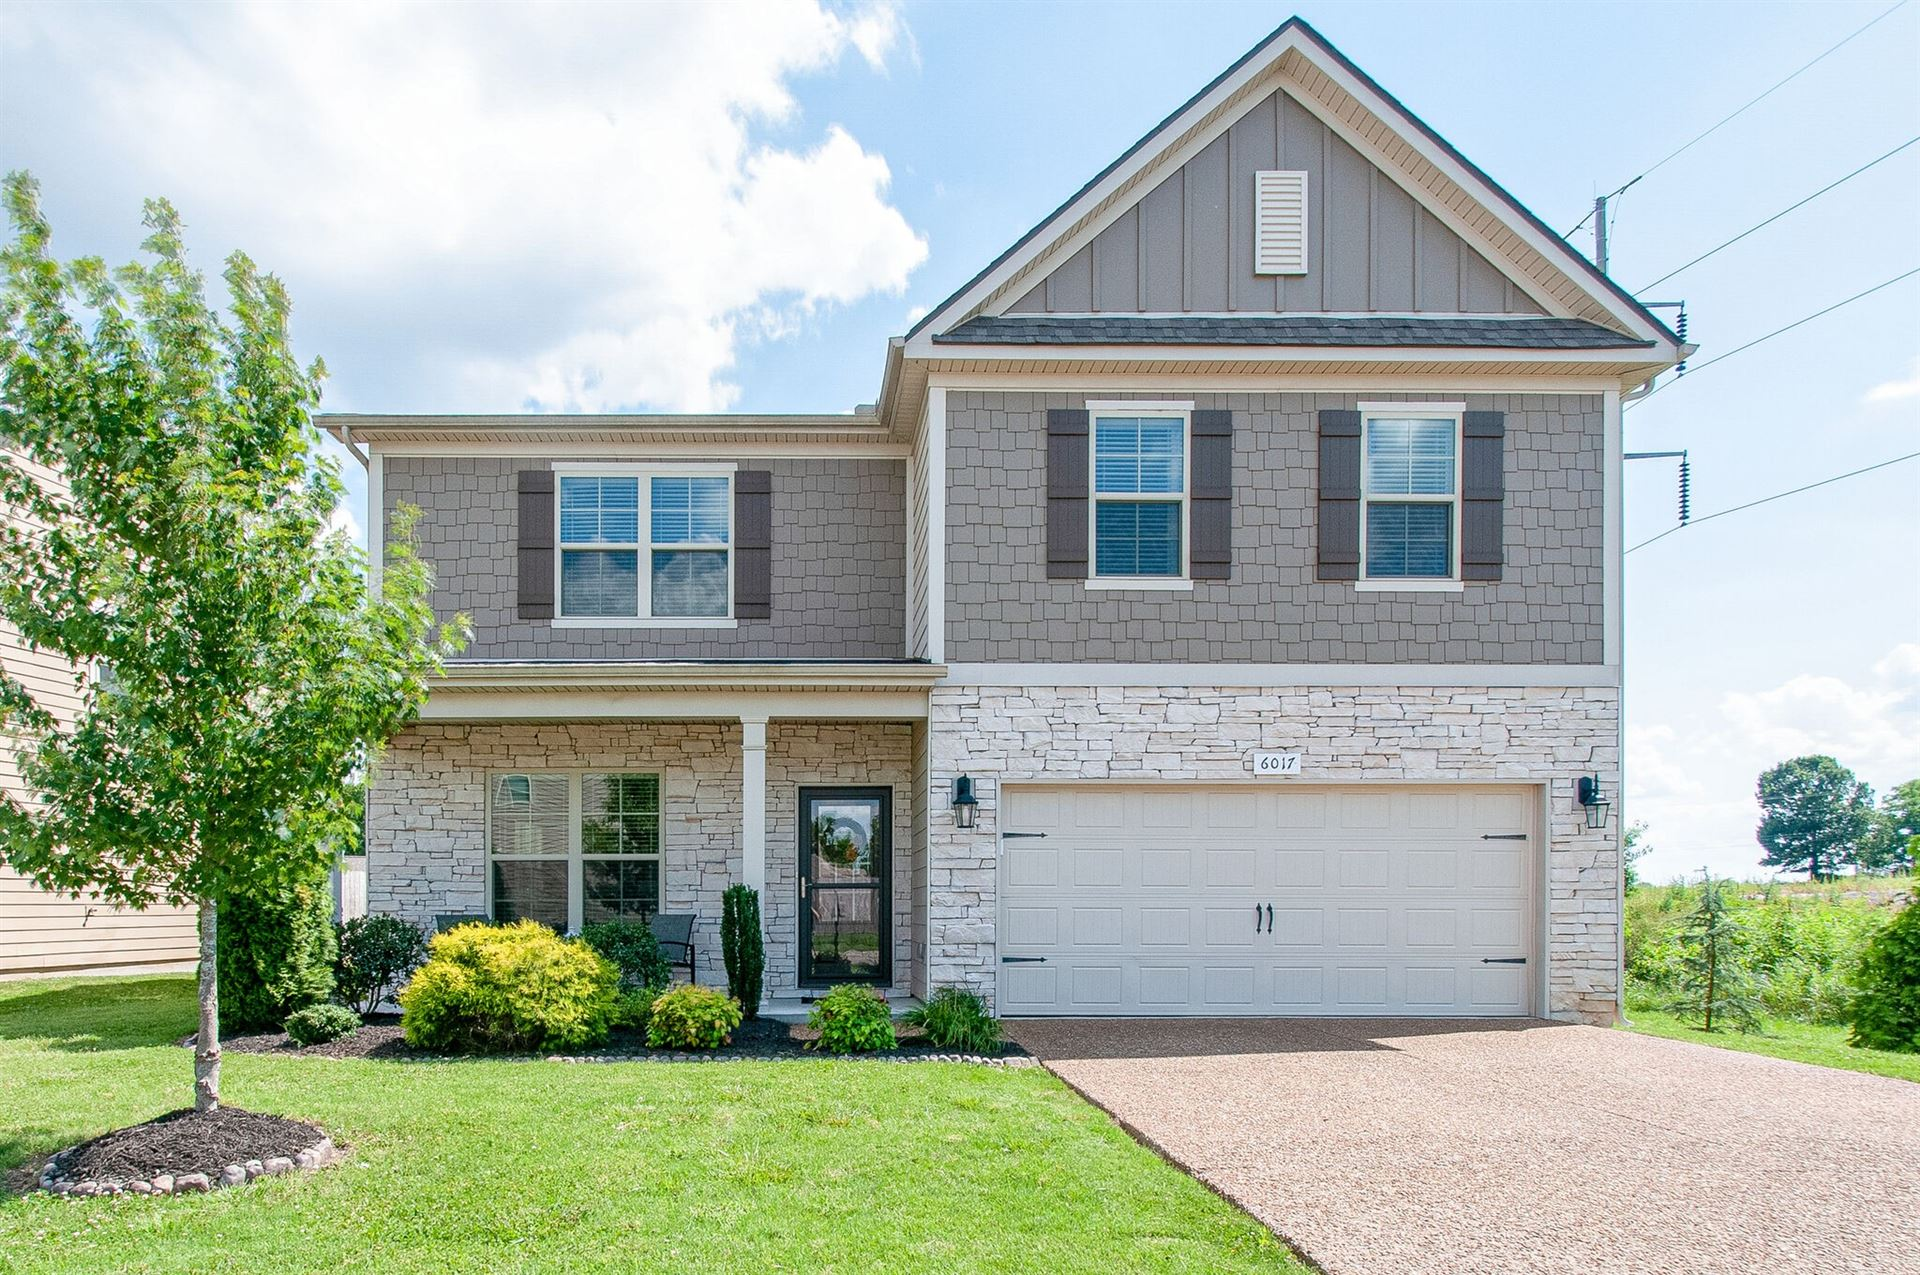 Photo of 6017 Aaron Dr, Spring Hill, TN 37174 (MLS # 2262752)